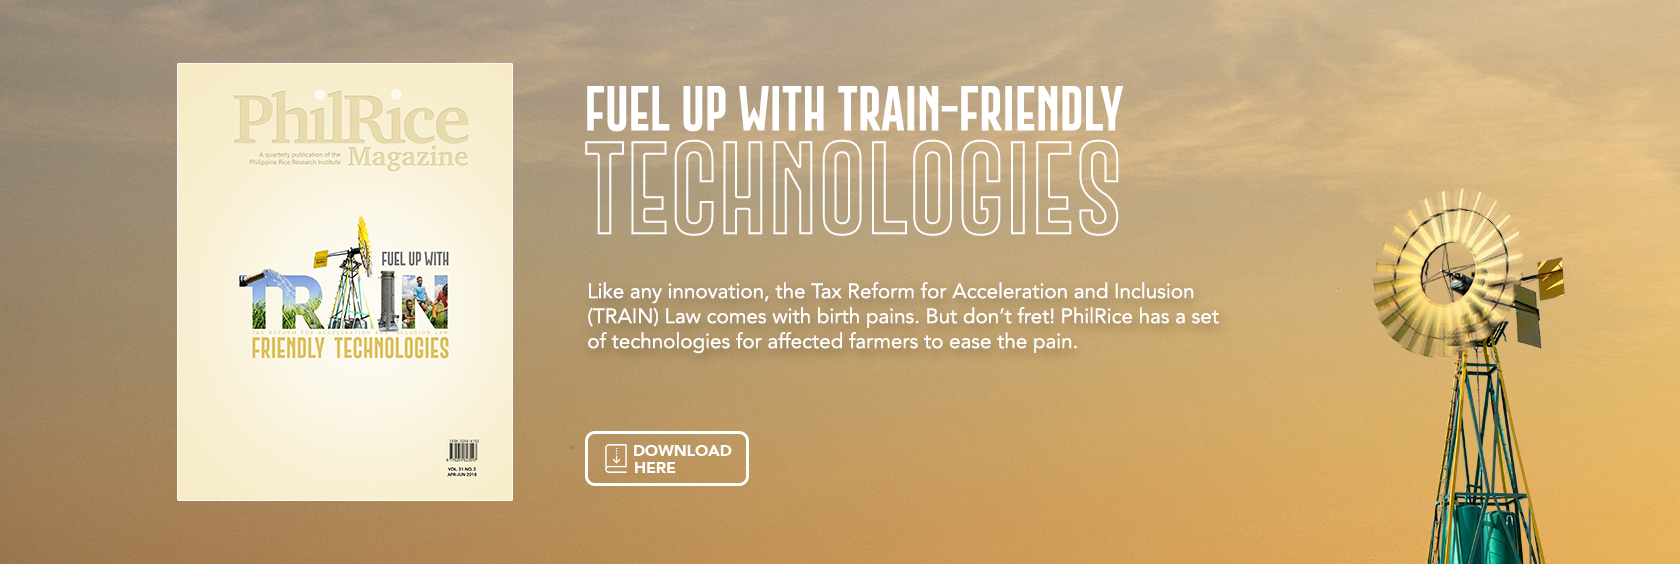 fuel-up-with-train-friendly-technology-banner